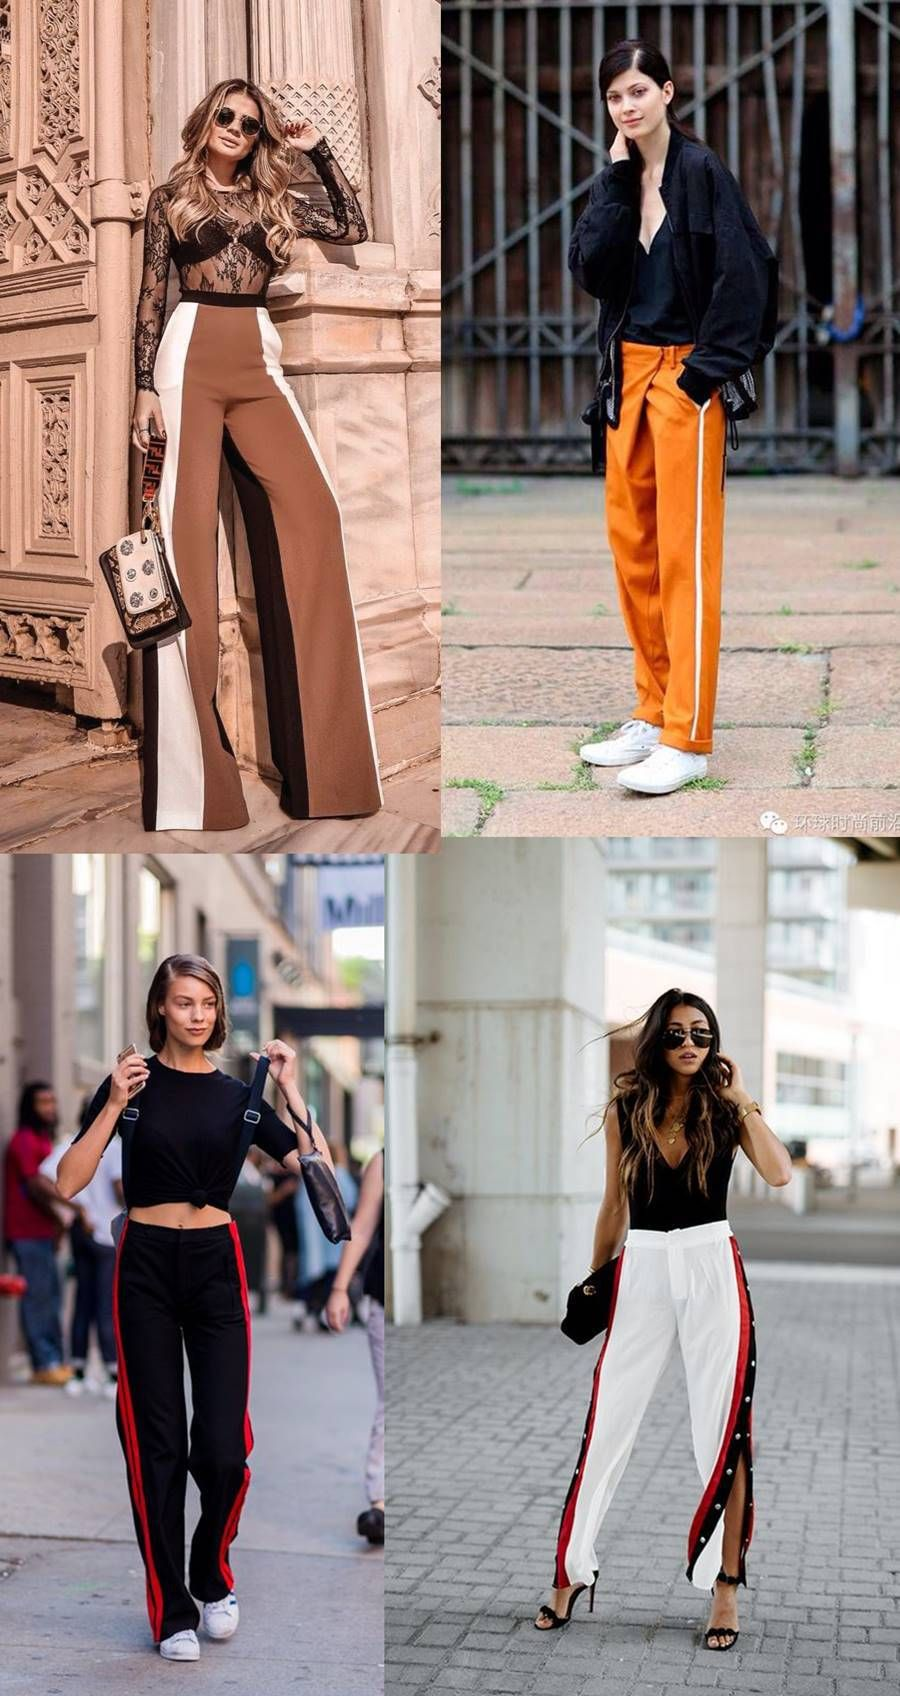 49b9b8313 Como usar e Onde comprar: Calça com Listra Lateral, compras online, loja  online, ecommerce, where to buy, track pants, how to use, trend, tendência,  look, ...